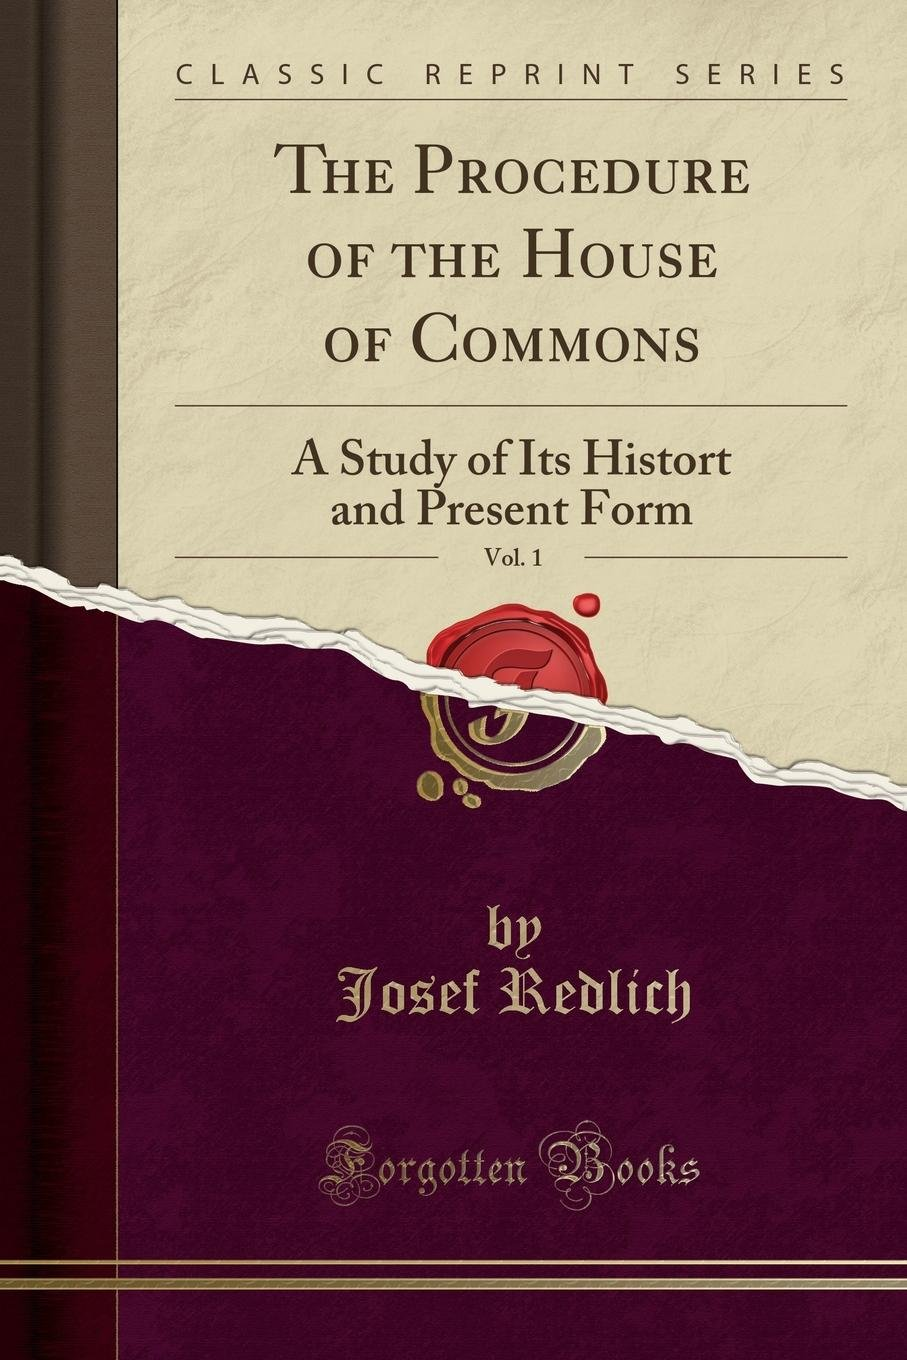 Download The Procedure of the House of Commons, Vol. 1: A Study of Its Histort and Present Form (Classic Reprint) pdf epub